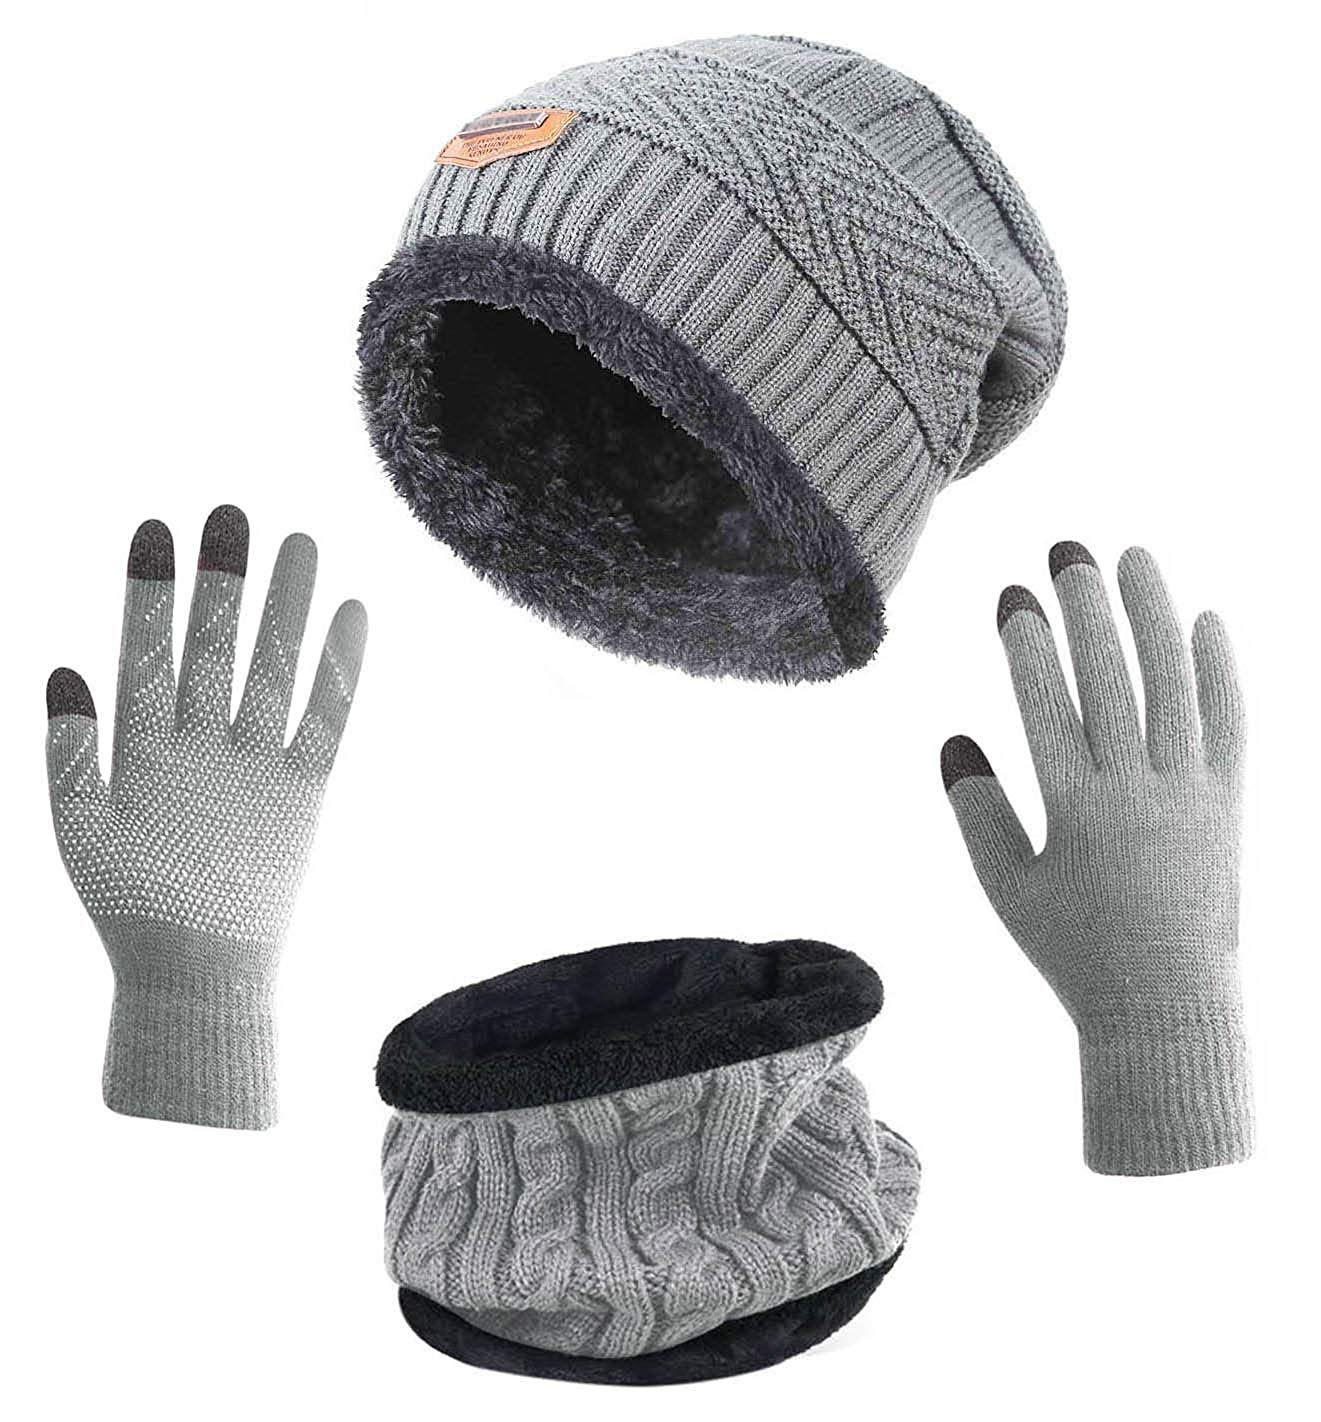 13th wedding anniversary gift ideas - A winter kit including gloves, mitten